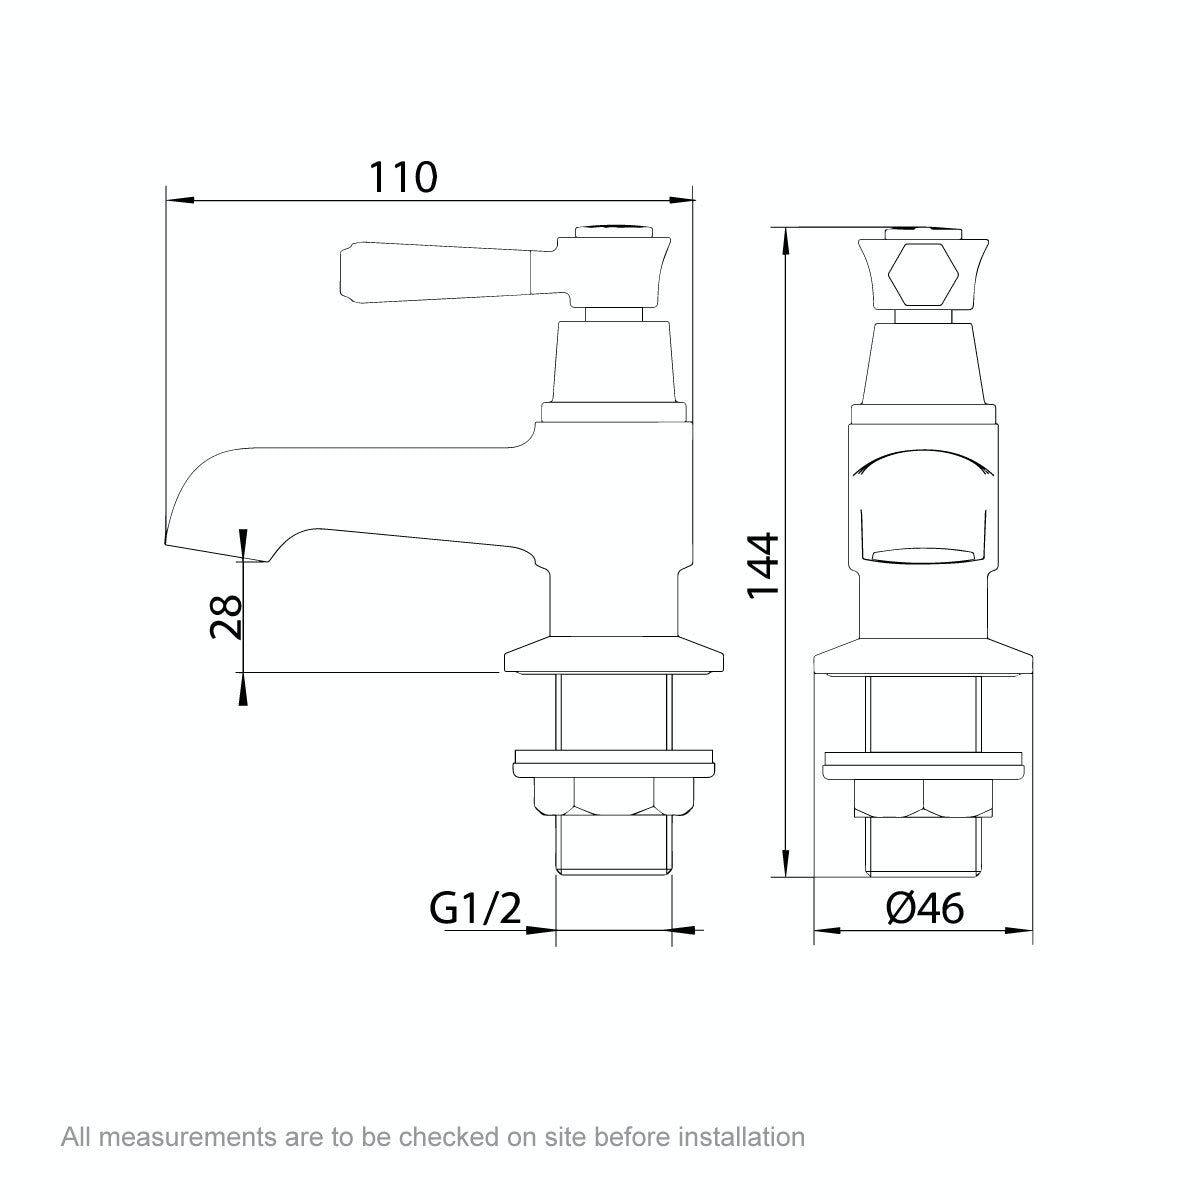 Dimensions for The Bath Co. Beaumont lever basin pillar taps